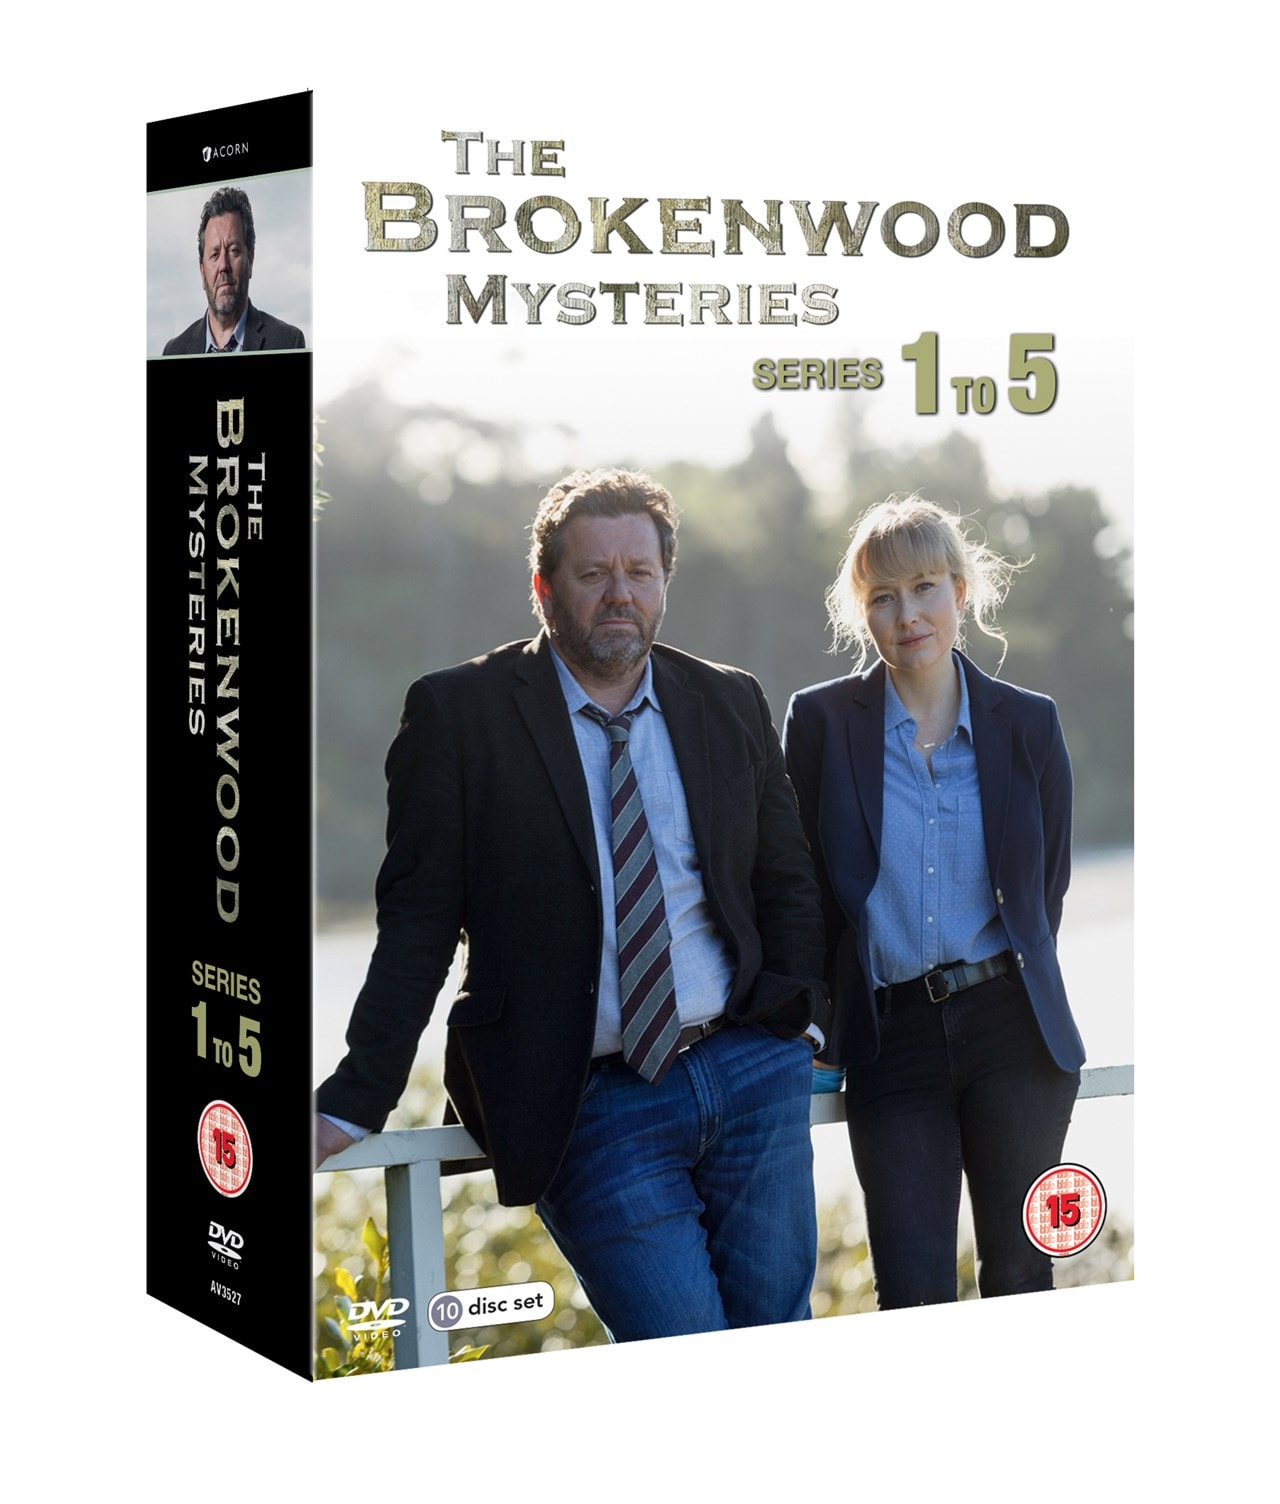 The Brokenwood Mysteries: Series 1 to 5 - 2